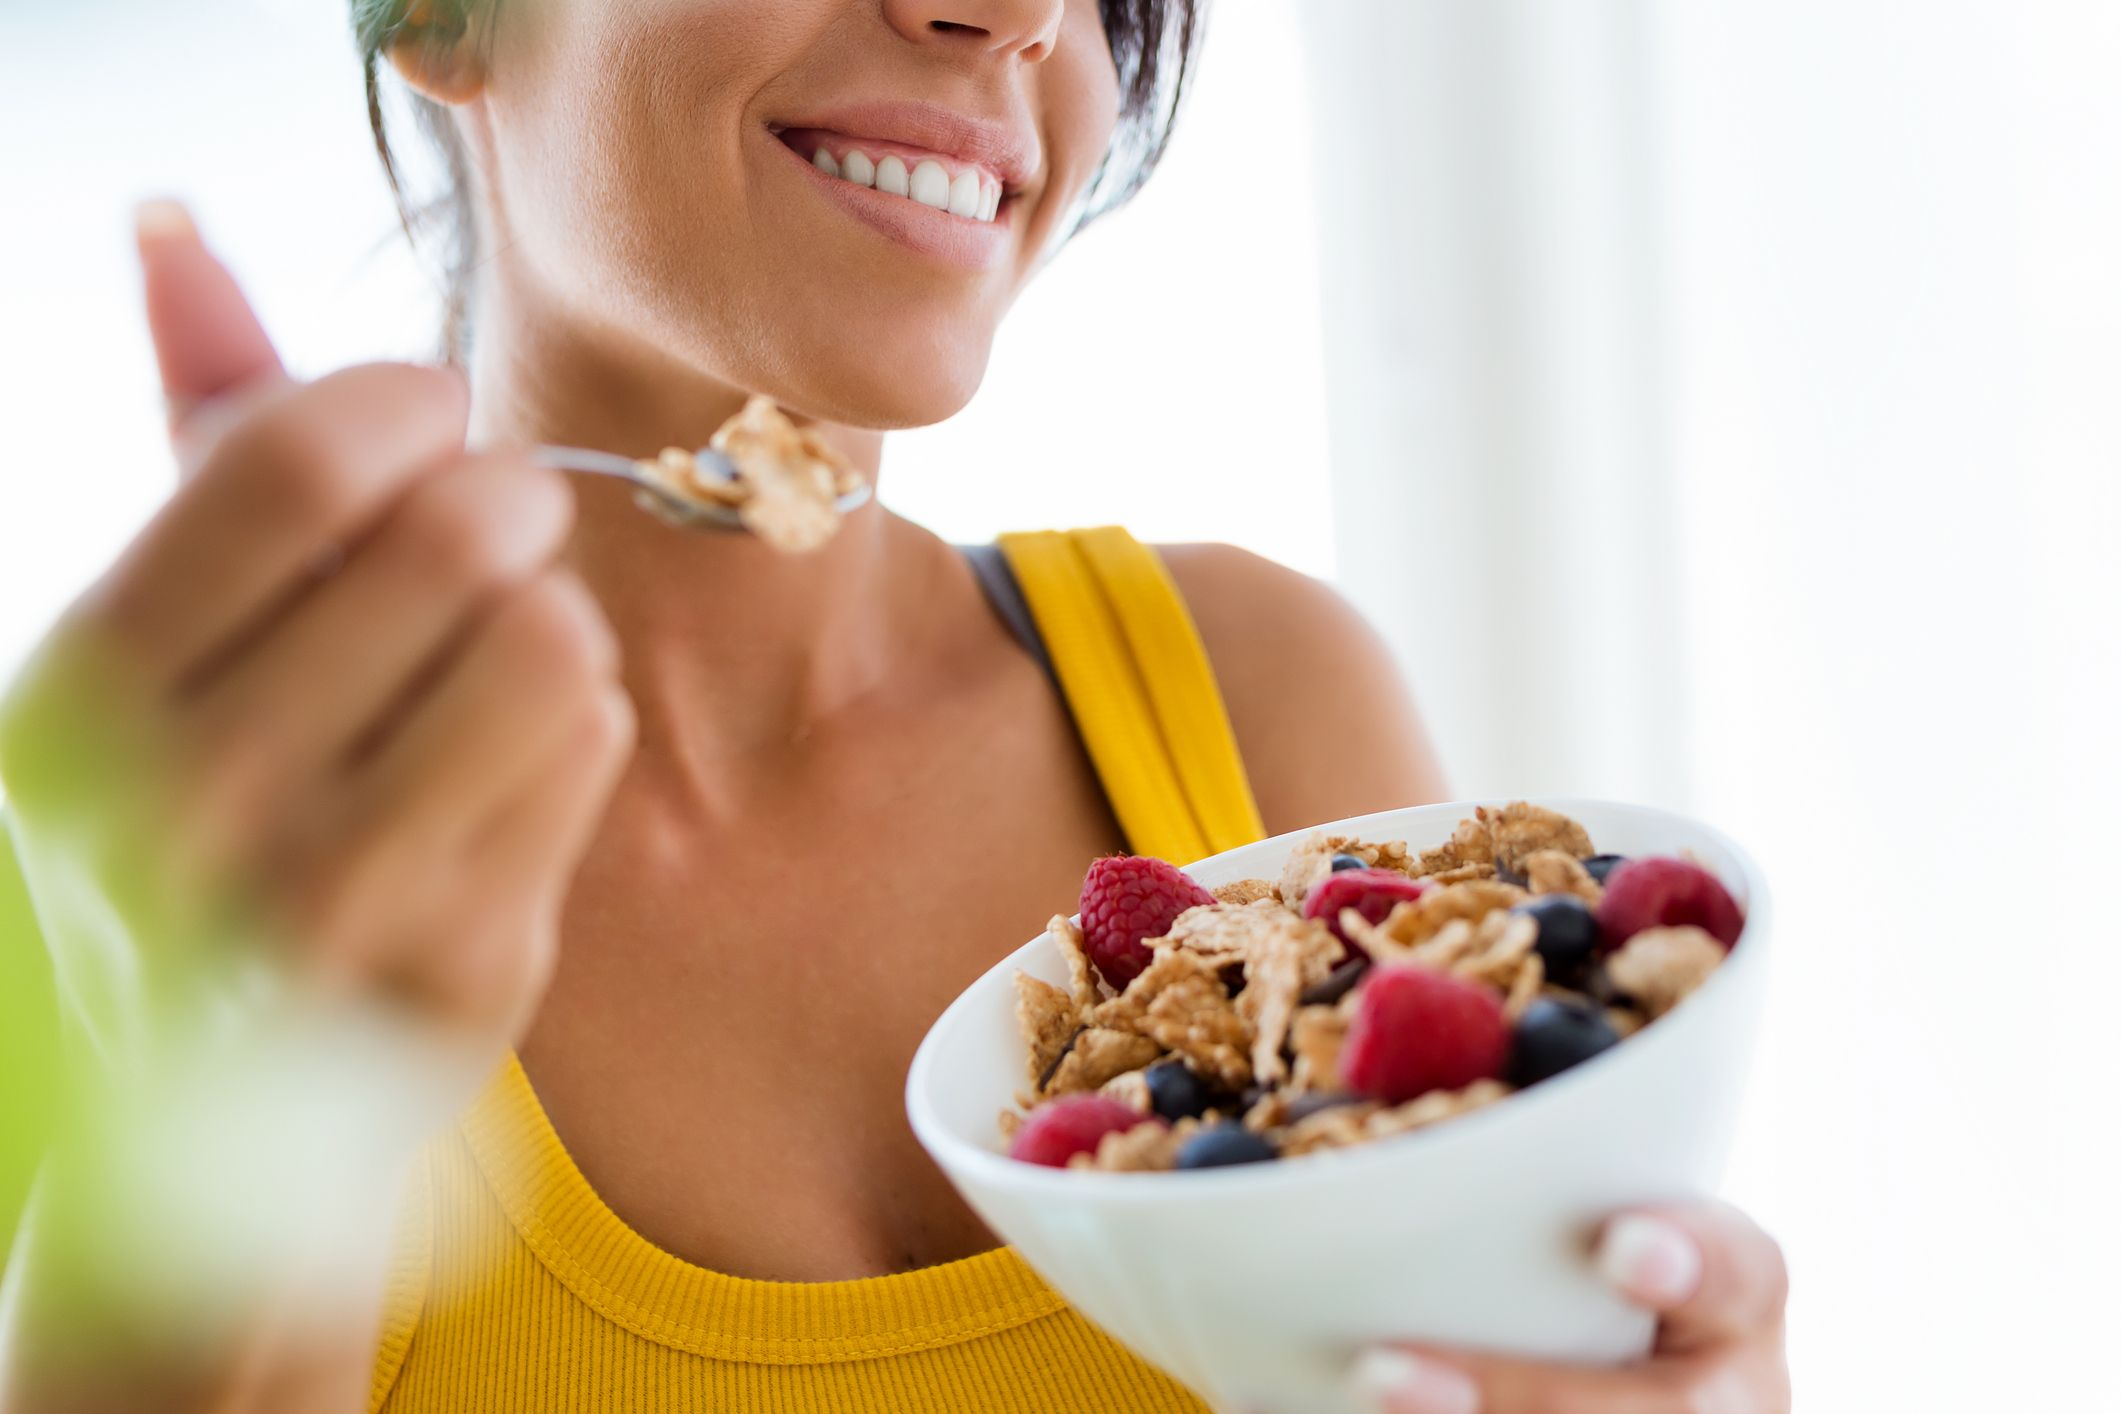 10 Best Healthy Cereals to Enjoy for Breakfast, According to Dietitians